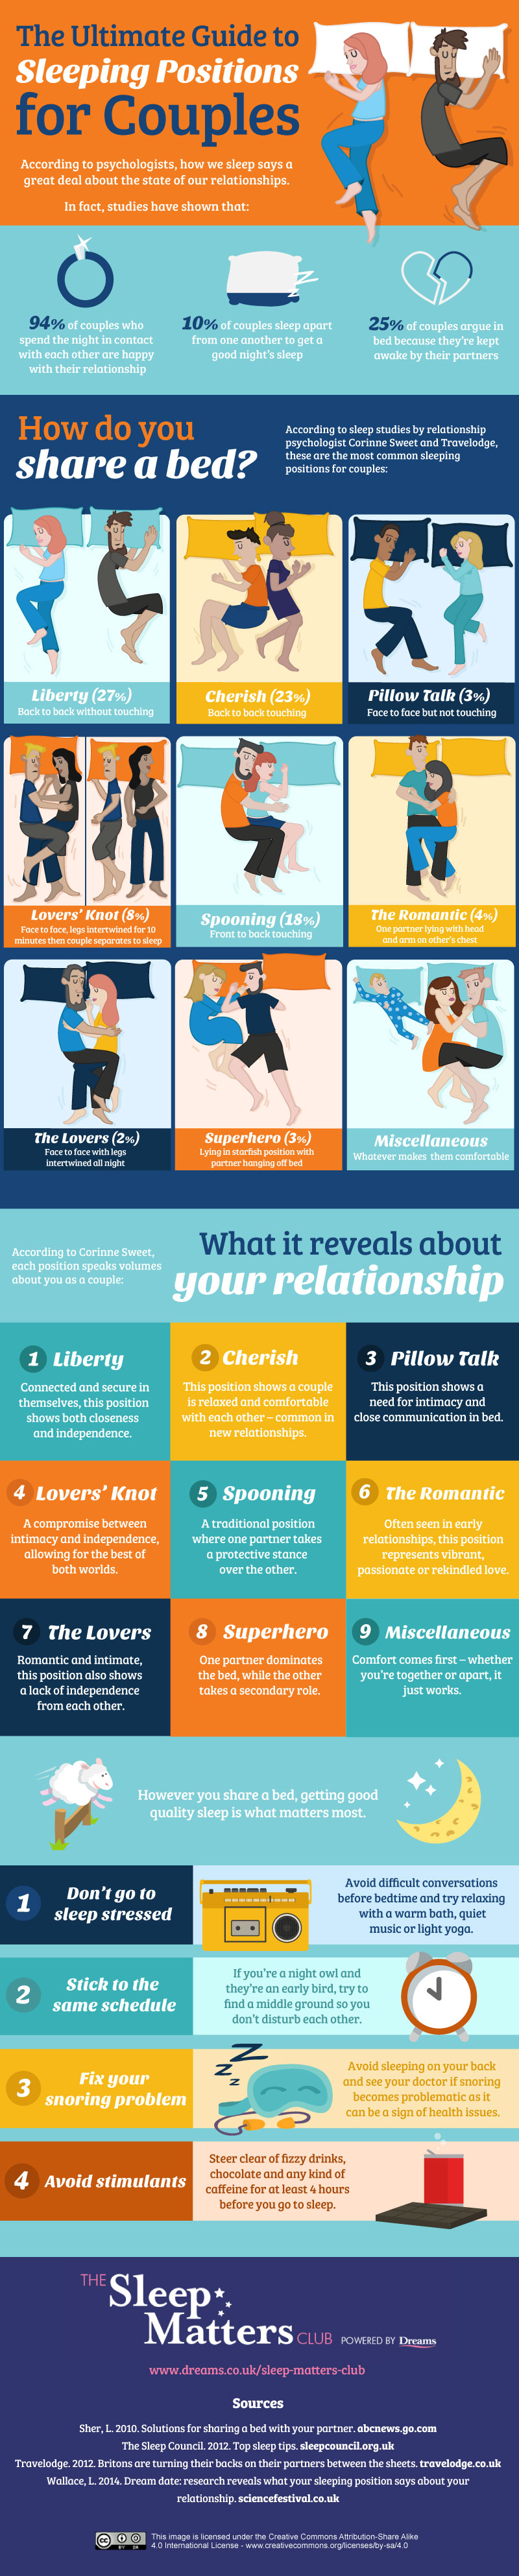 How to Read Relationships from Sleep Styles: 9 Classic Couple Sleeping Positions - Infographic